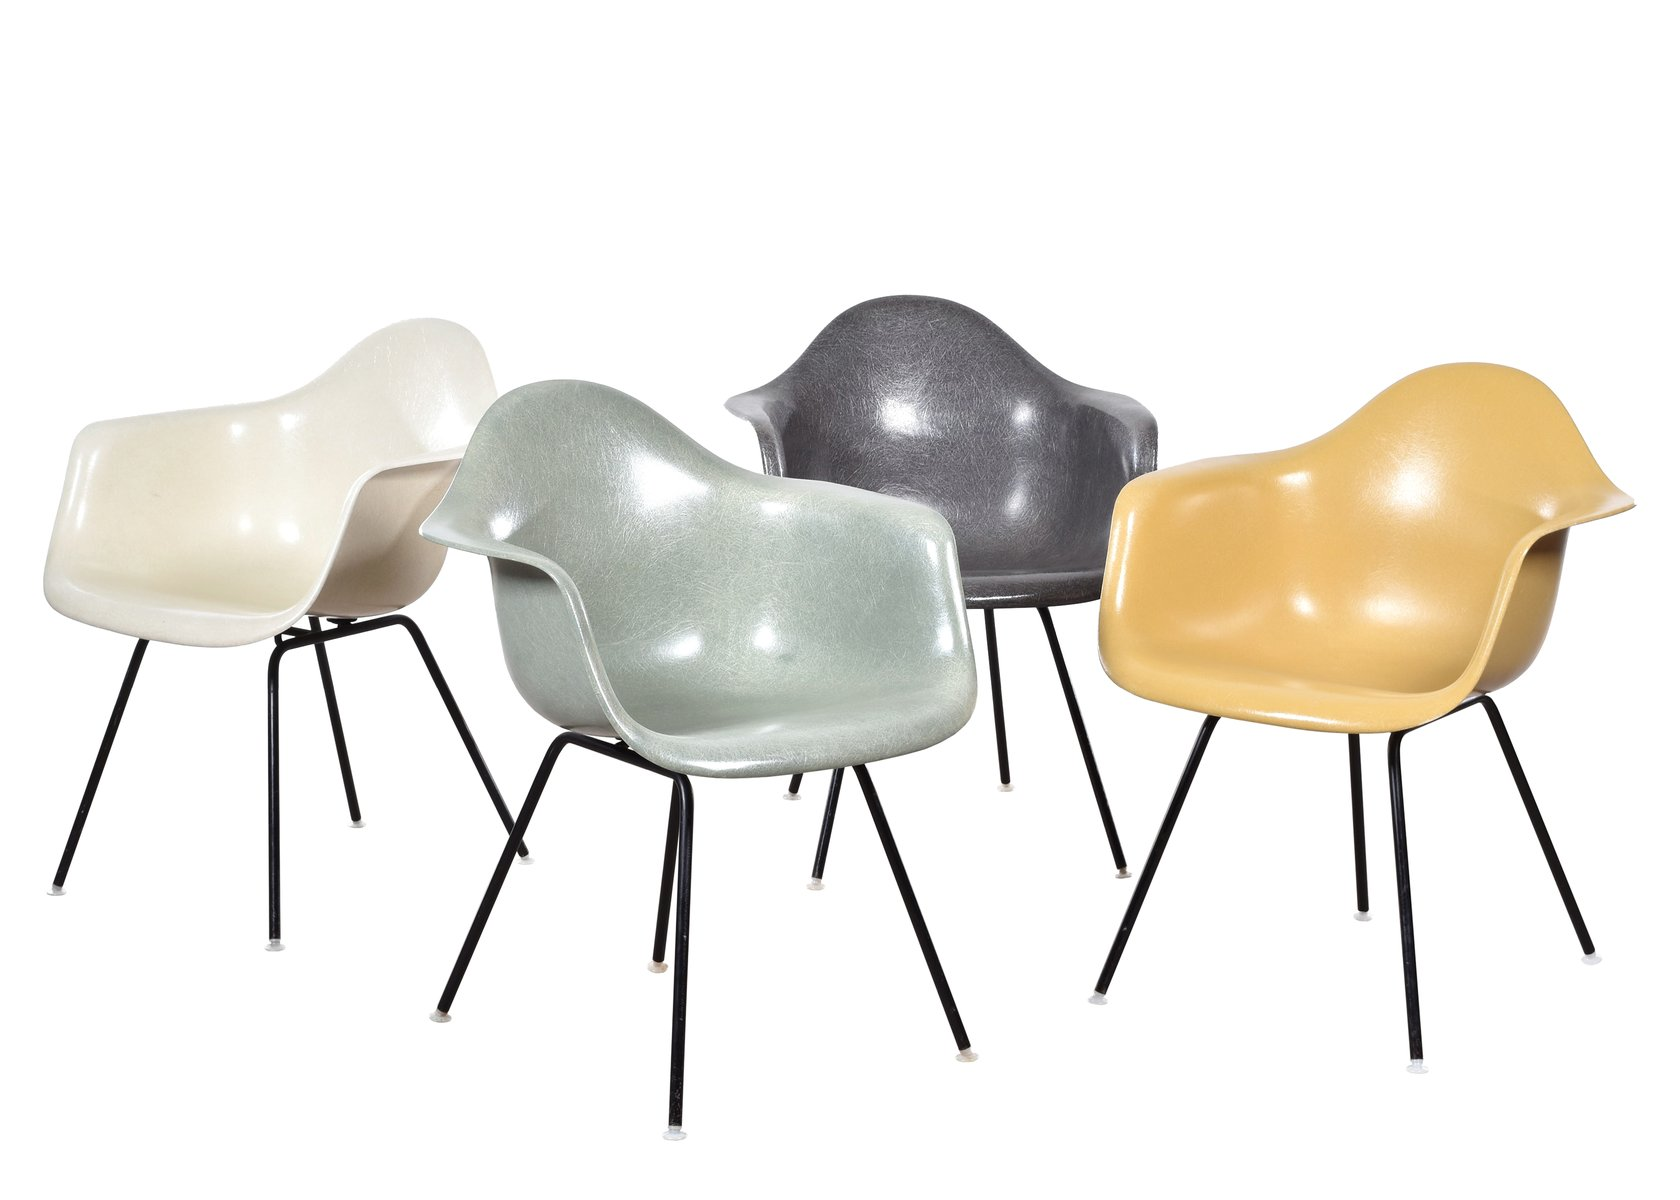 herman miller chair sale dining set with fabric chairs dax by charles and ray eames for miller, of 4 at pamono